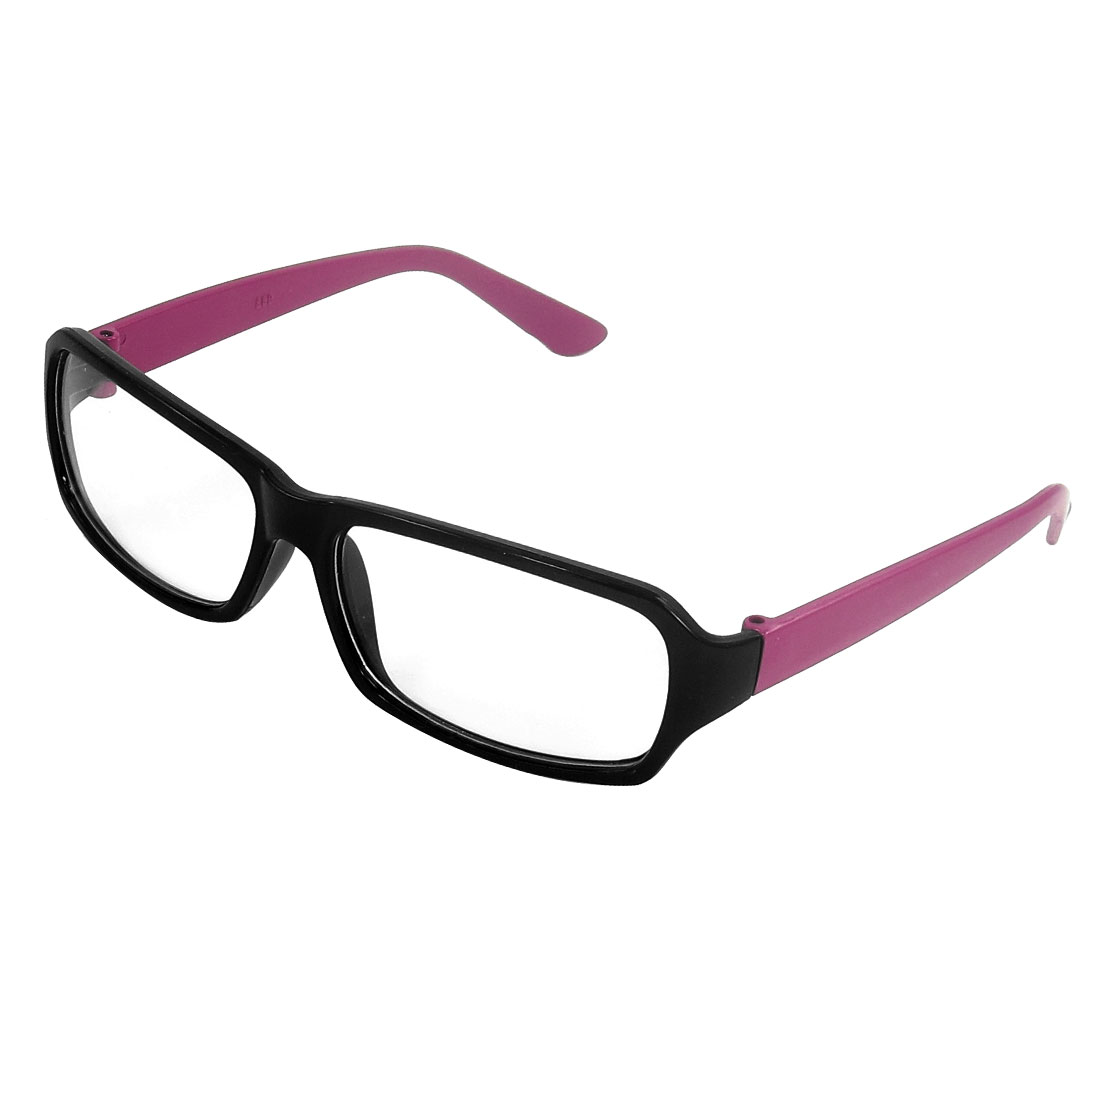 Black Plastic Full Frame Fuchsia Arm Plain Glasses Eyeglasses for Ladies